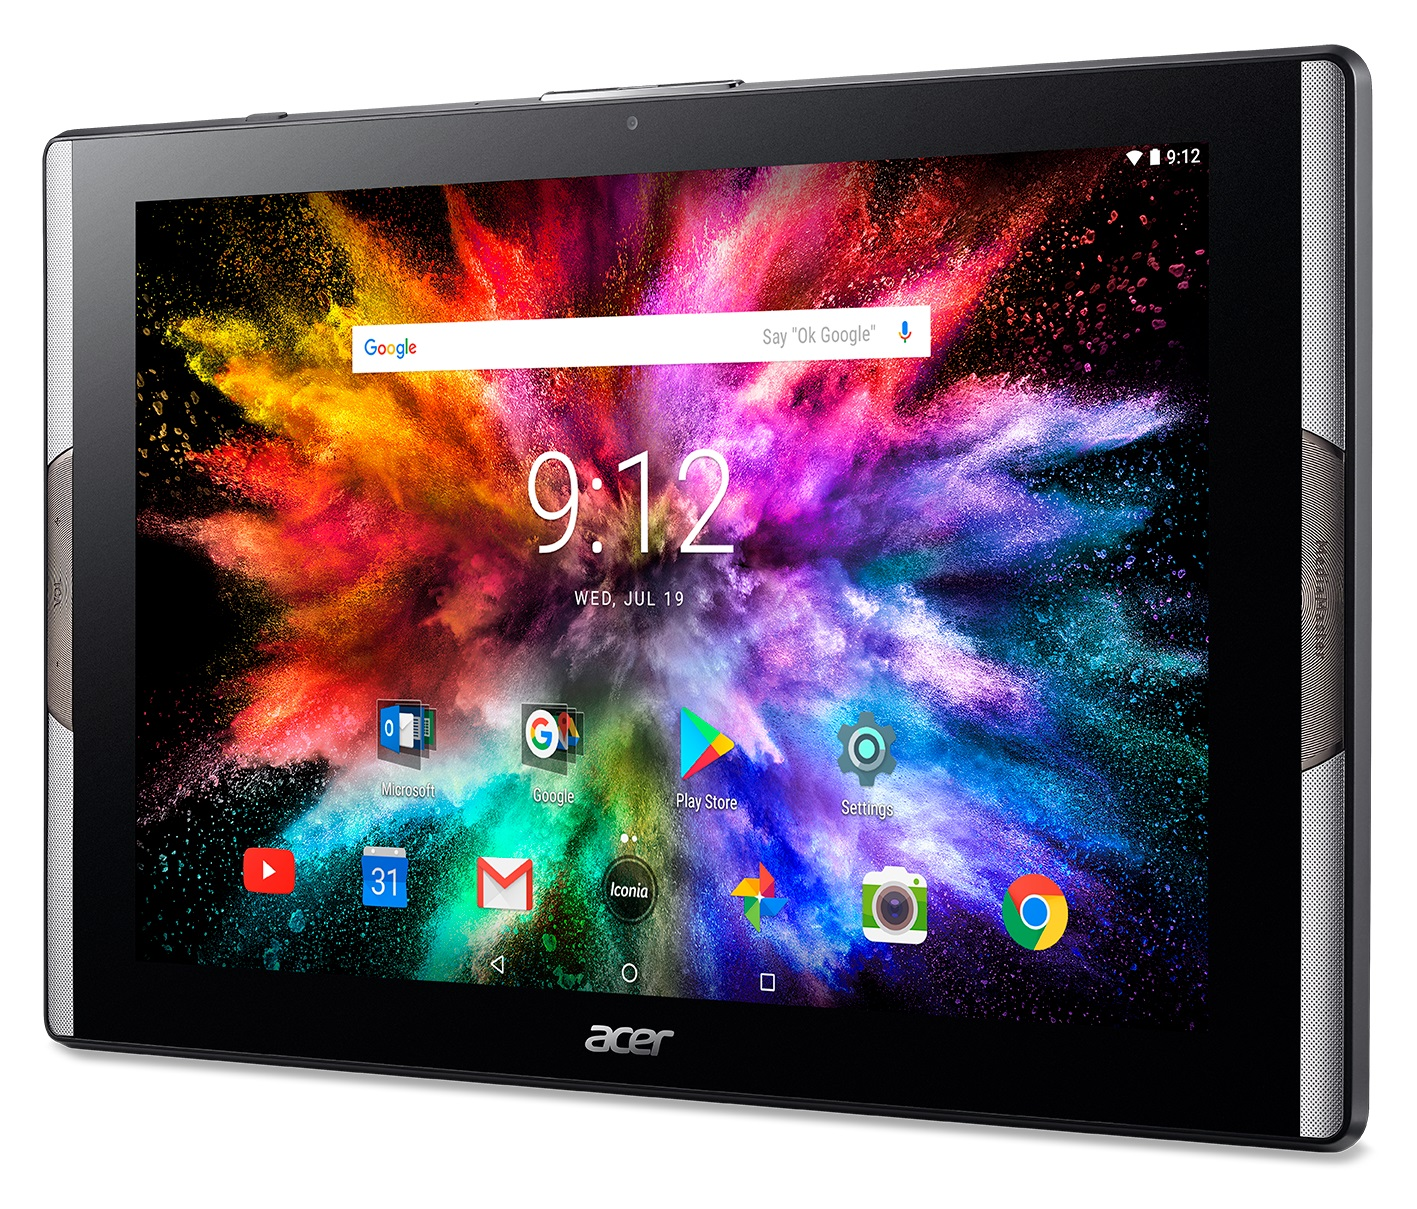 10 1 Inch 4gb Ram Android 7 0 Tablet Acer Iconia Tab 10 A3 A50 With Quad Speakers Launched In Us Too